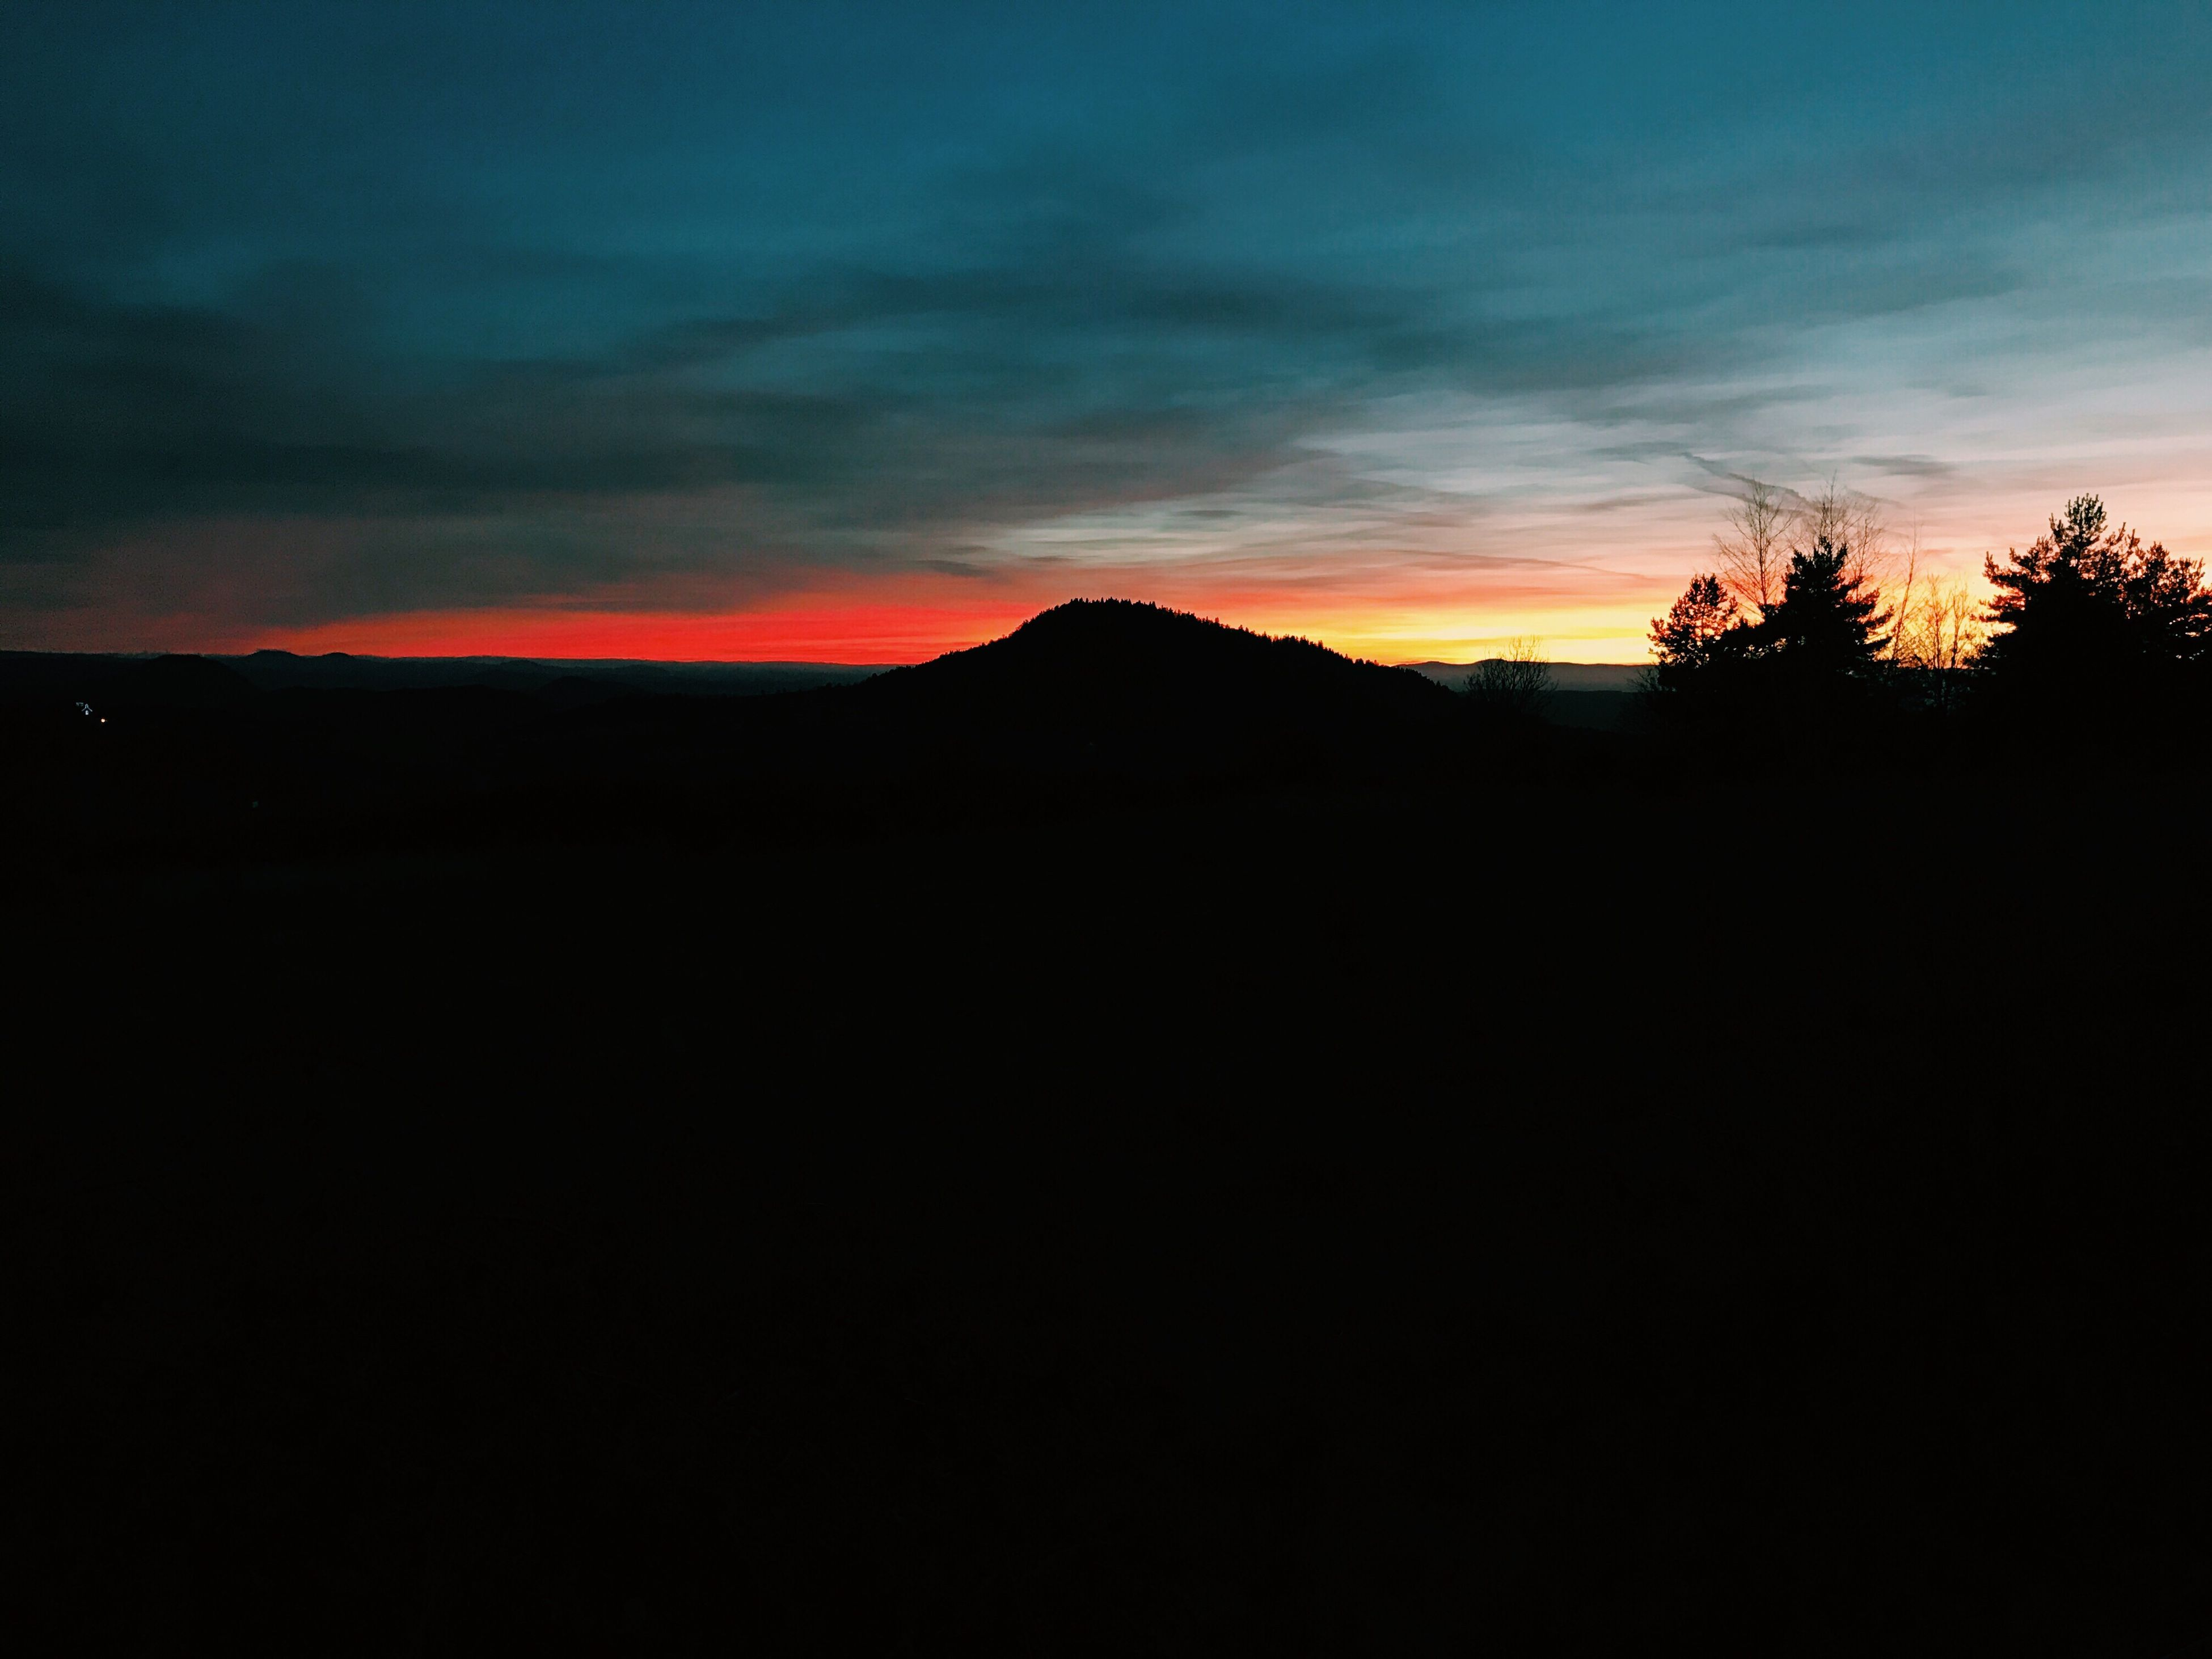 sunset, nature, beauty in nature, space and astronomy, sky, silhouette, outdoors, astronomy, no people, mountain, night, star - space, galaxy